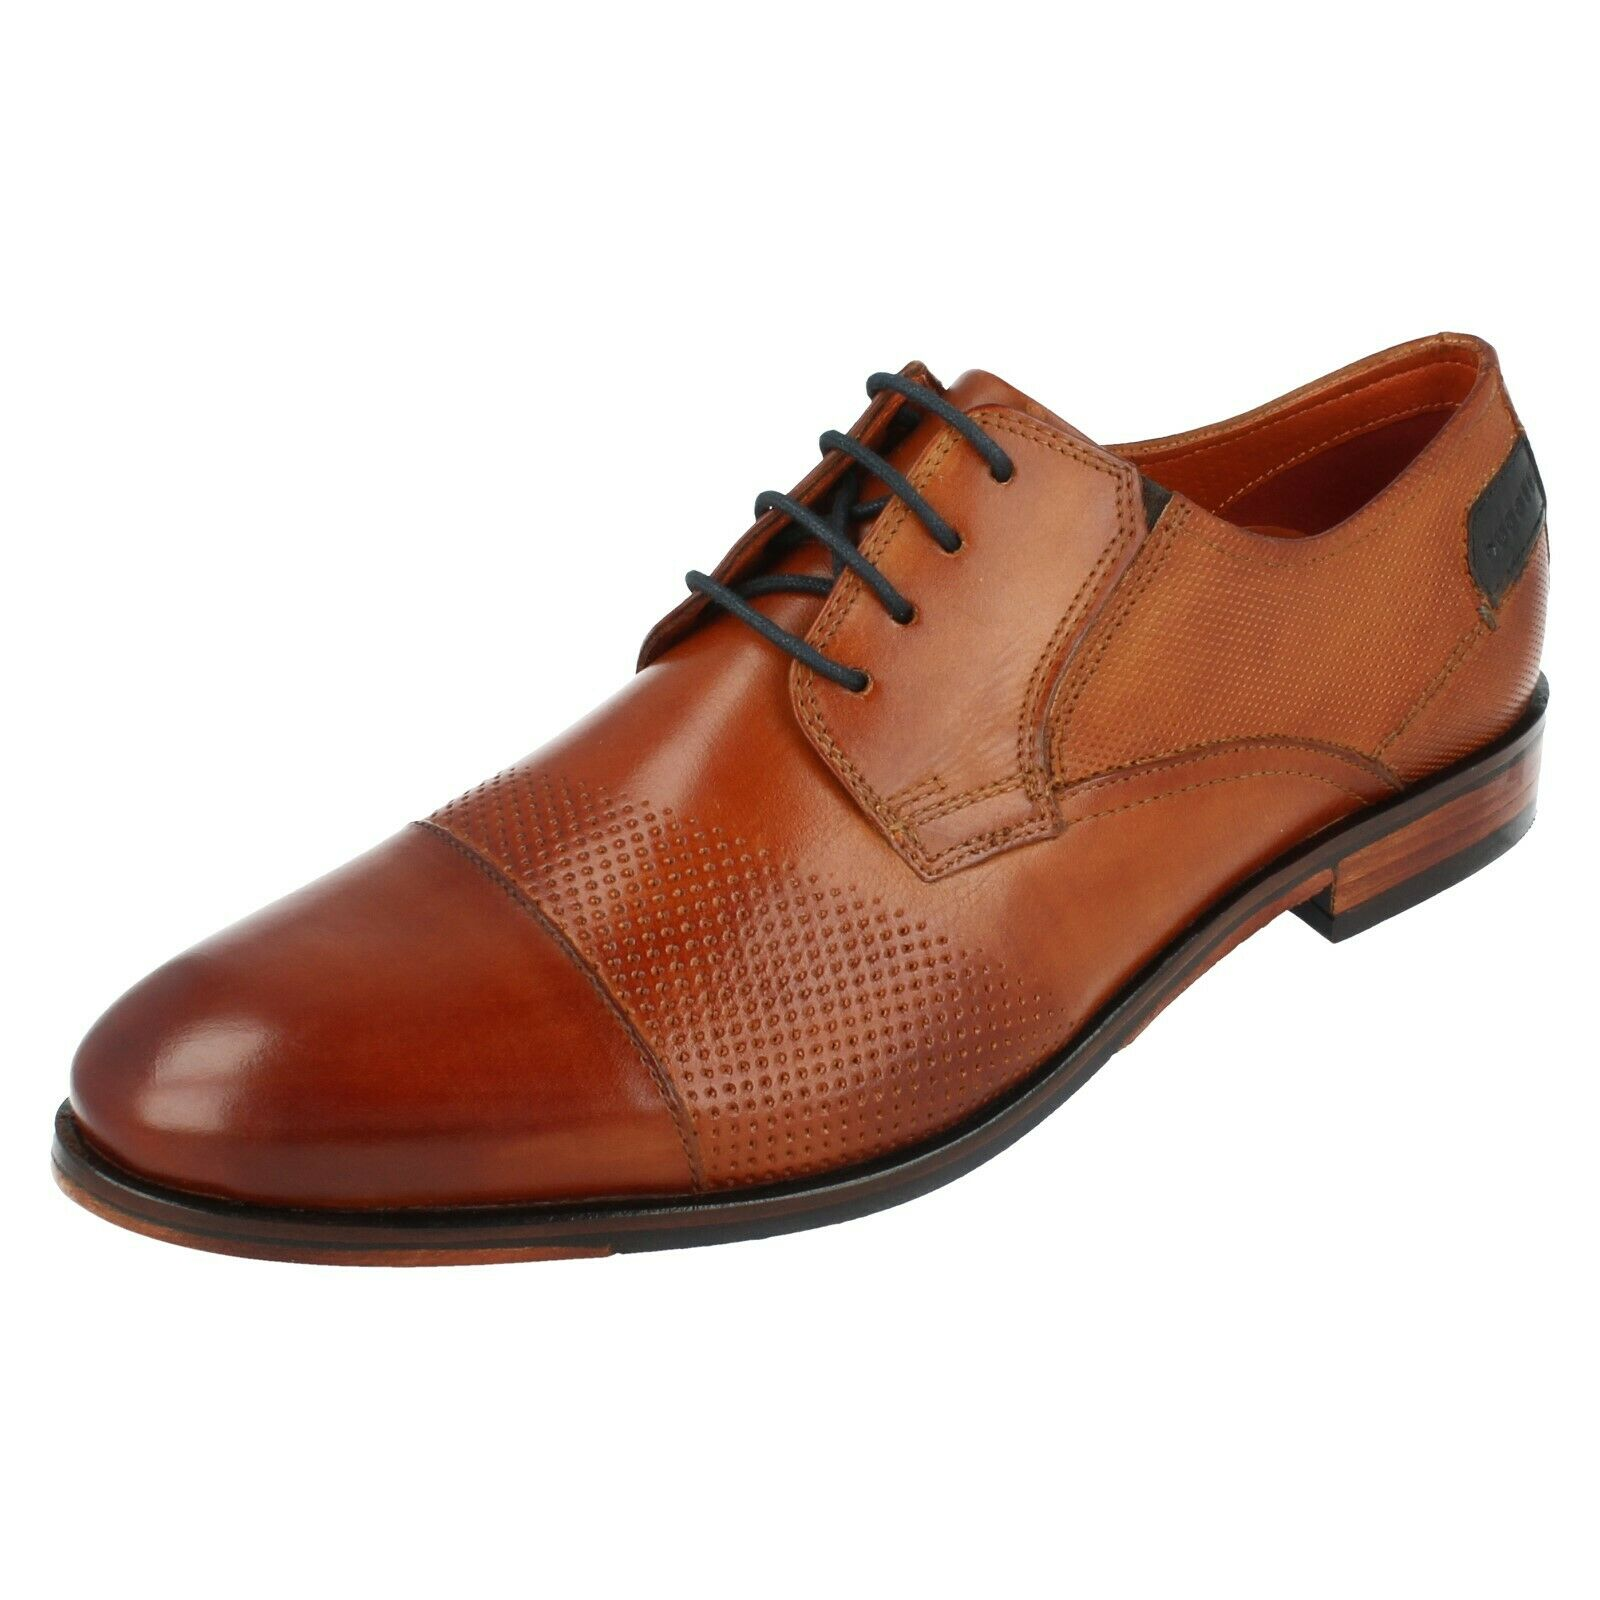 Mens 311-67701-1100 Cognac Leather Lace Up shoes By Bugatti